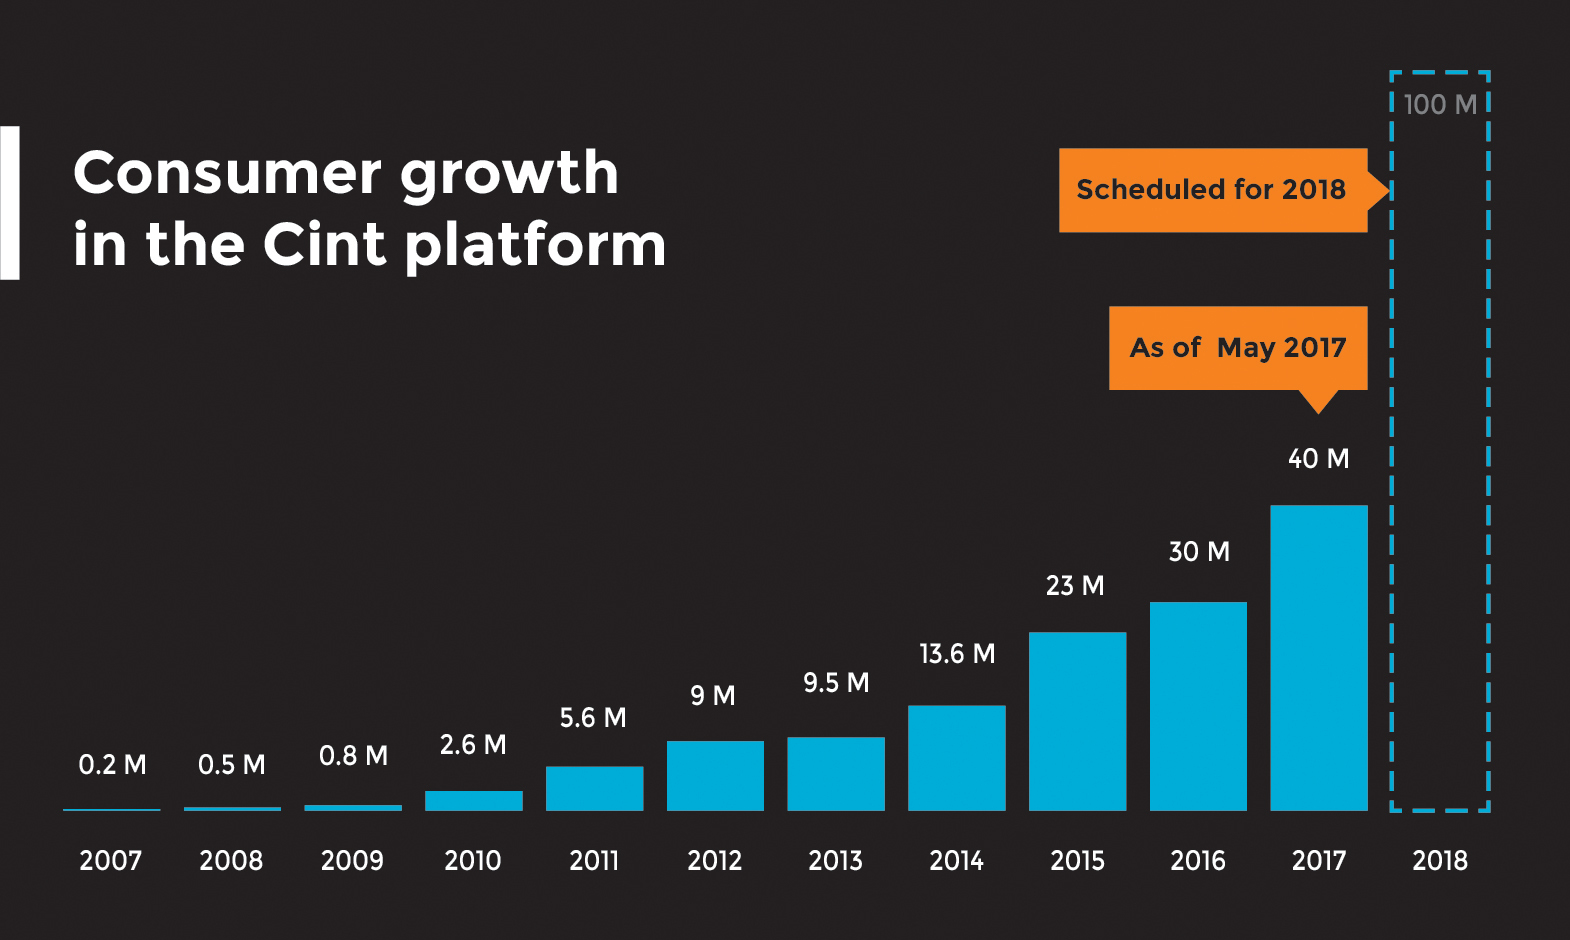 Cint announces that the consumer base in its platform has reached 40 million globally   www.cint.com (Graphic: Business Wire)